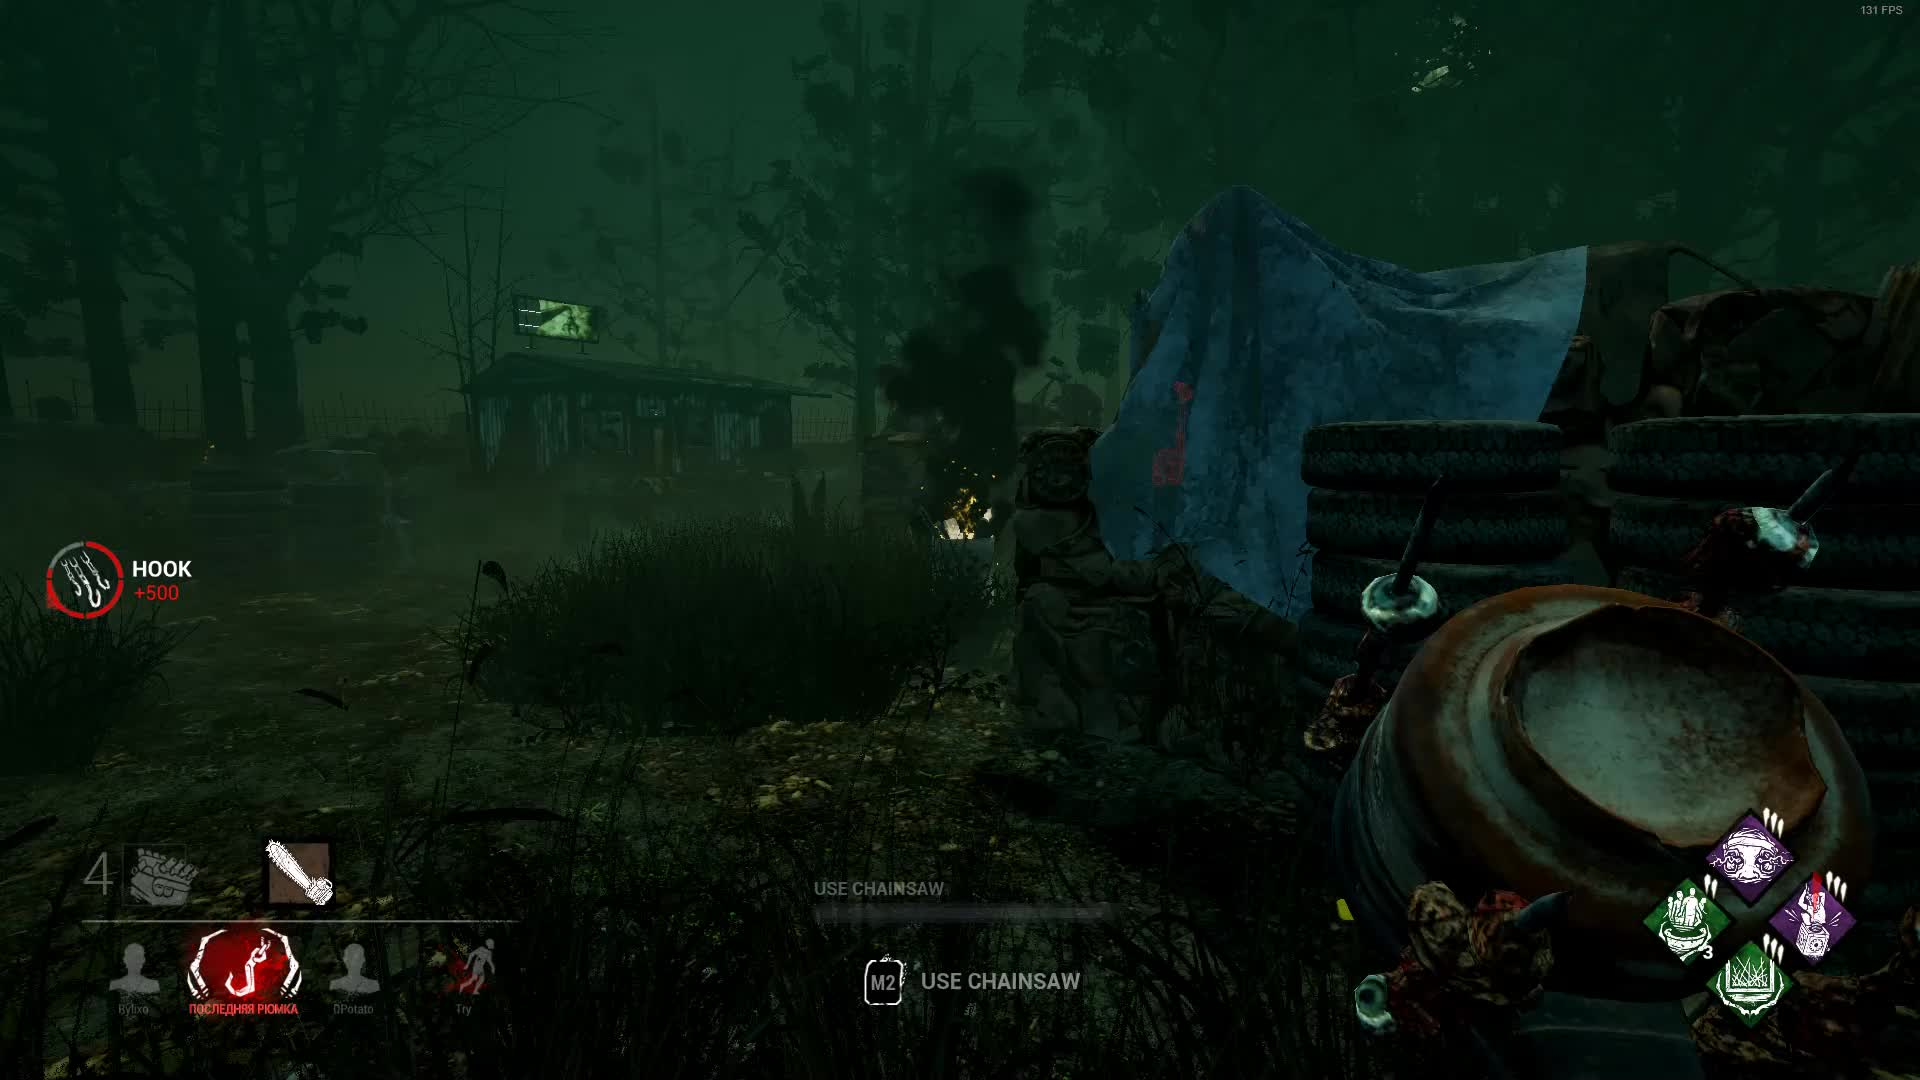 deadbydaylight, Dead by Daylight 2018.08.30 GIFs